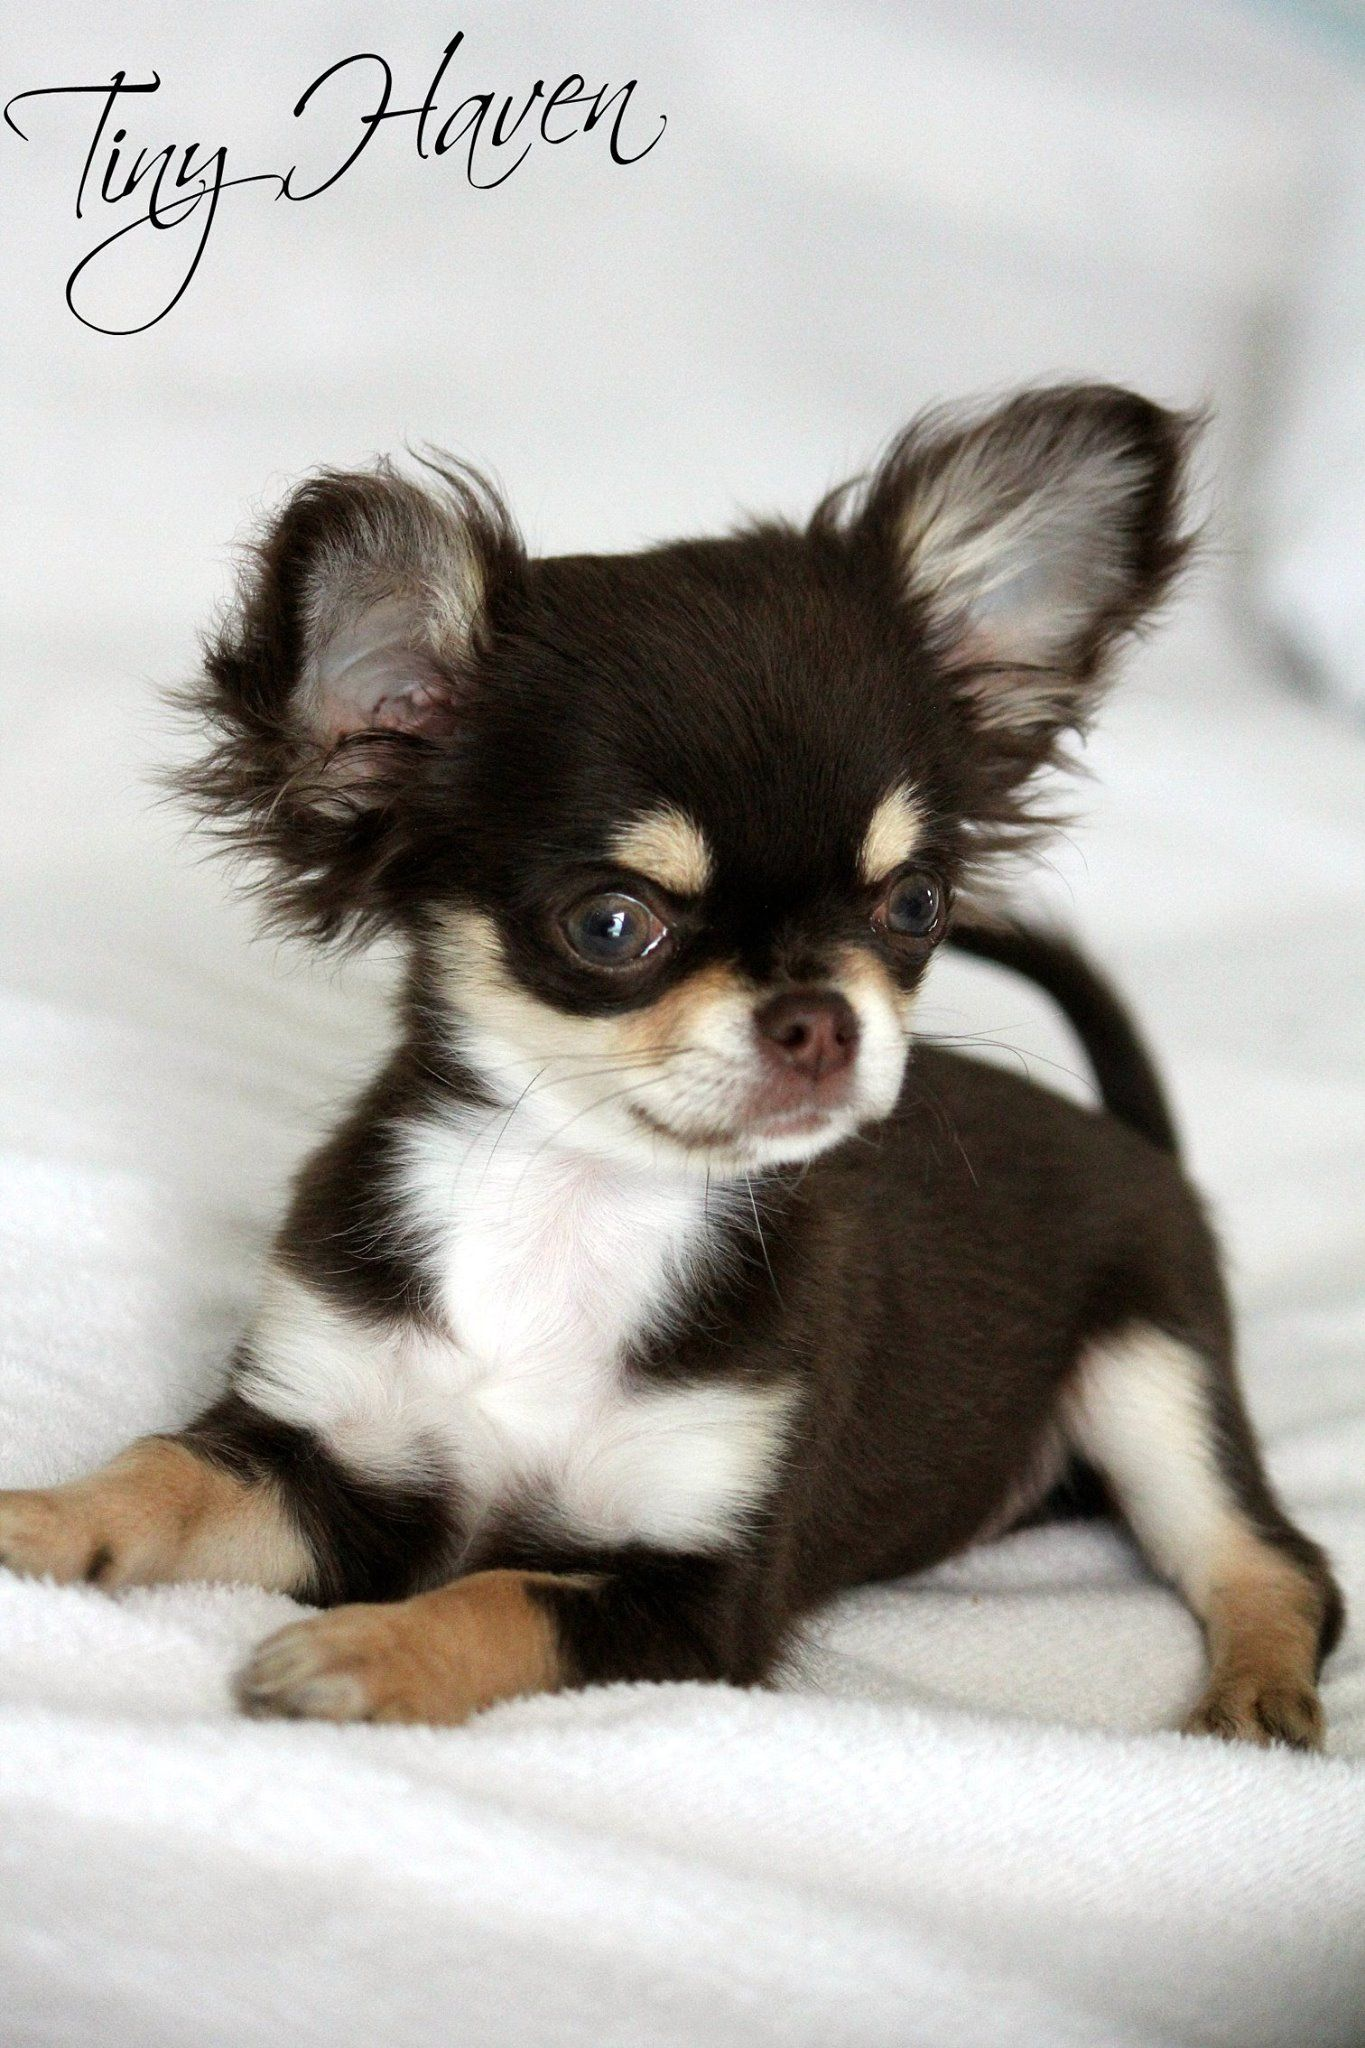 Chihuahua Puppy Looks Like A Frisky One Who Will Make A Great